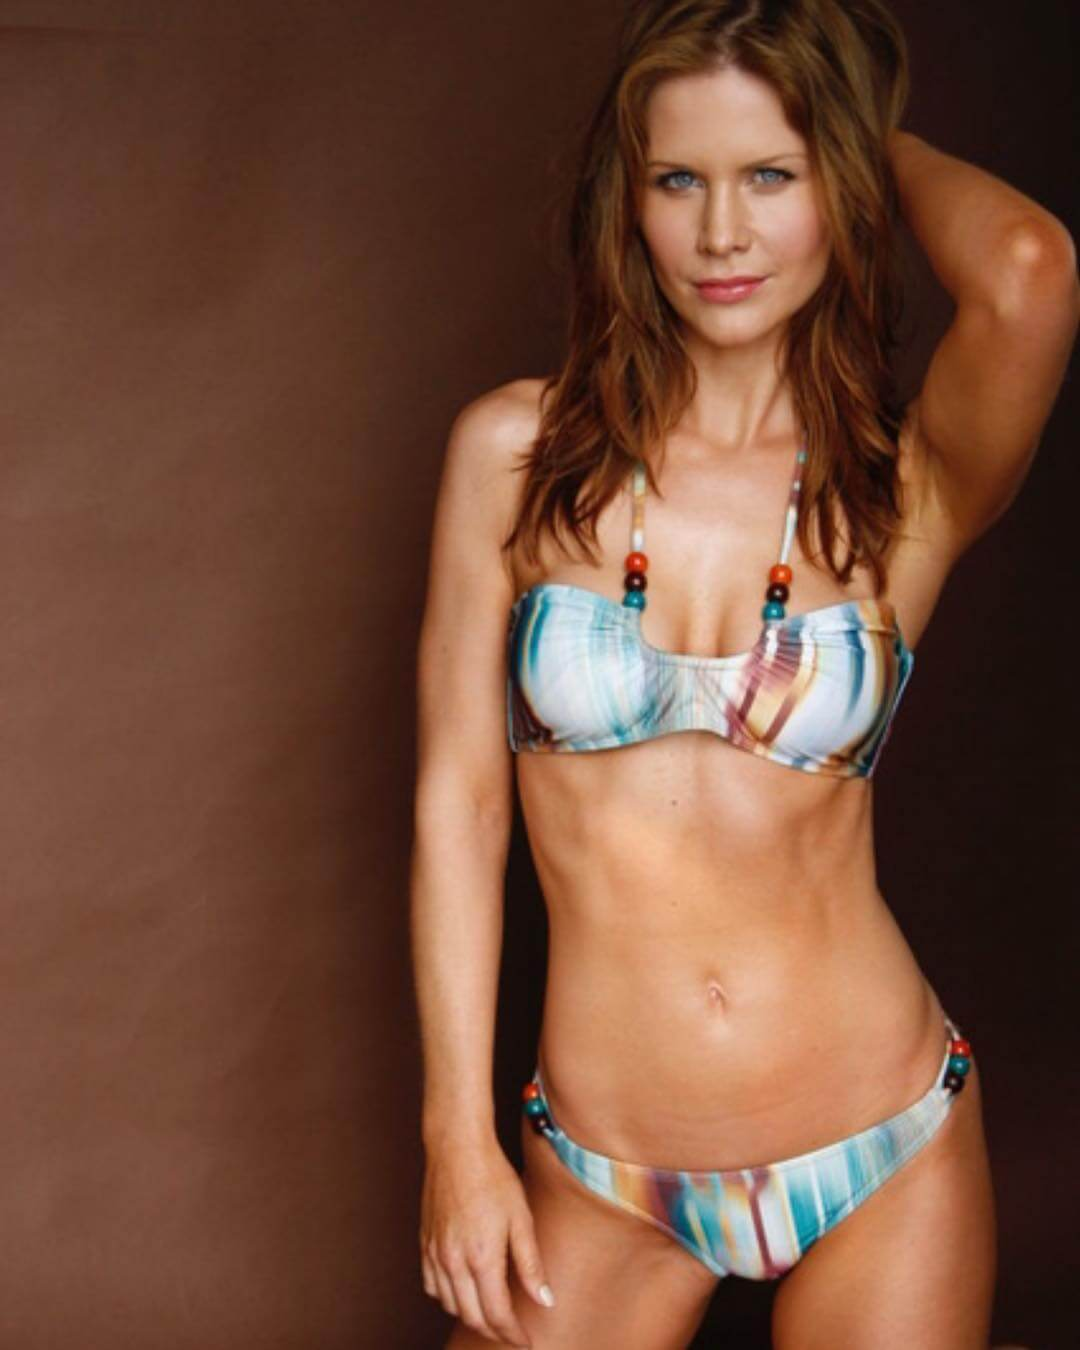 49 Hot Pictures Of Josie Davis Prove That She Has The Sexiest Body